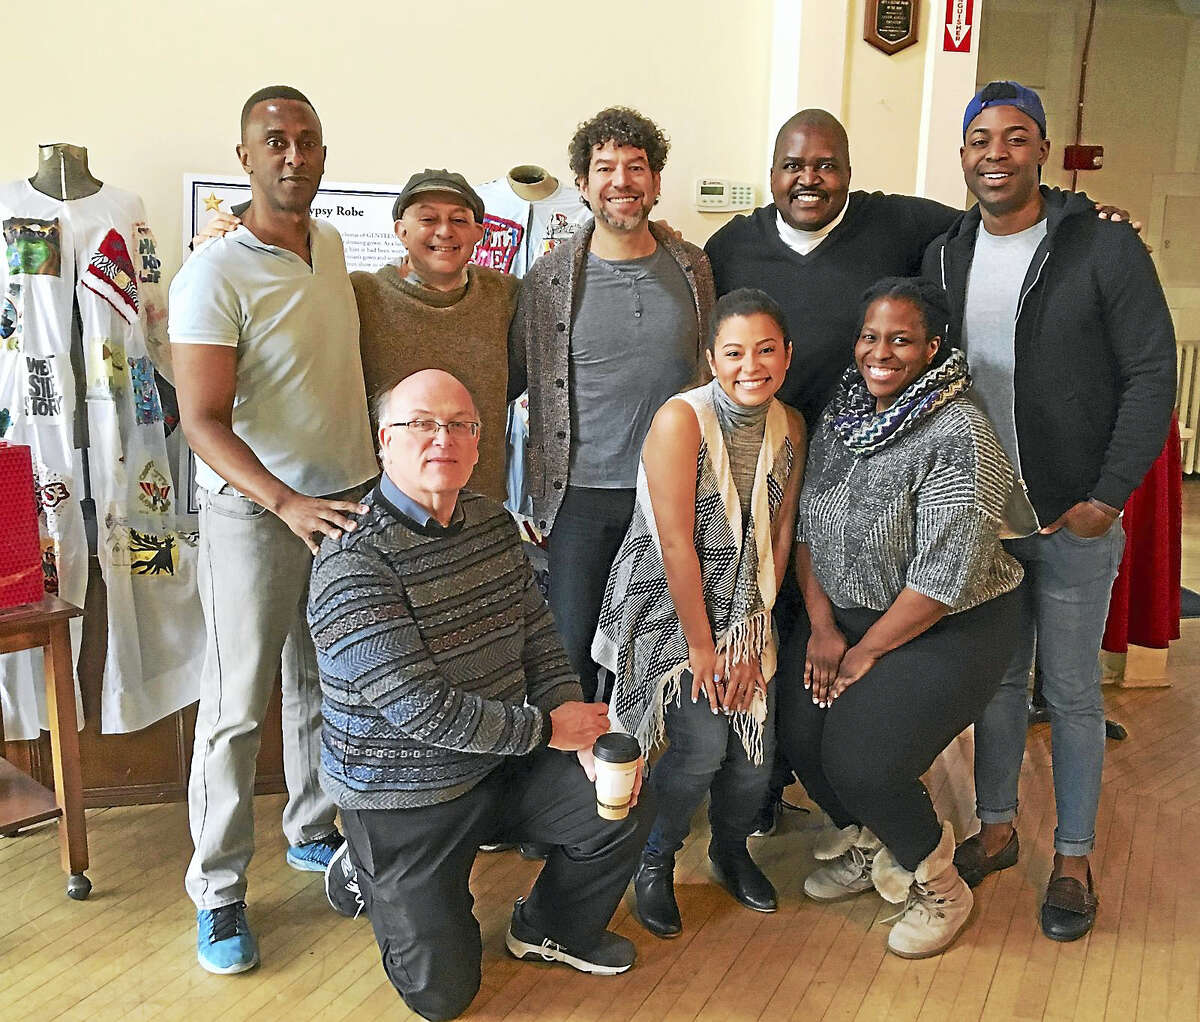 The cast of 'Trav'lin — The 1930s Harlem Musical', which opens Thursday at Seven Angels Theatre in Waterbury.